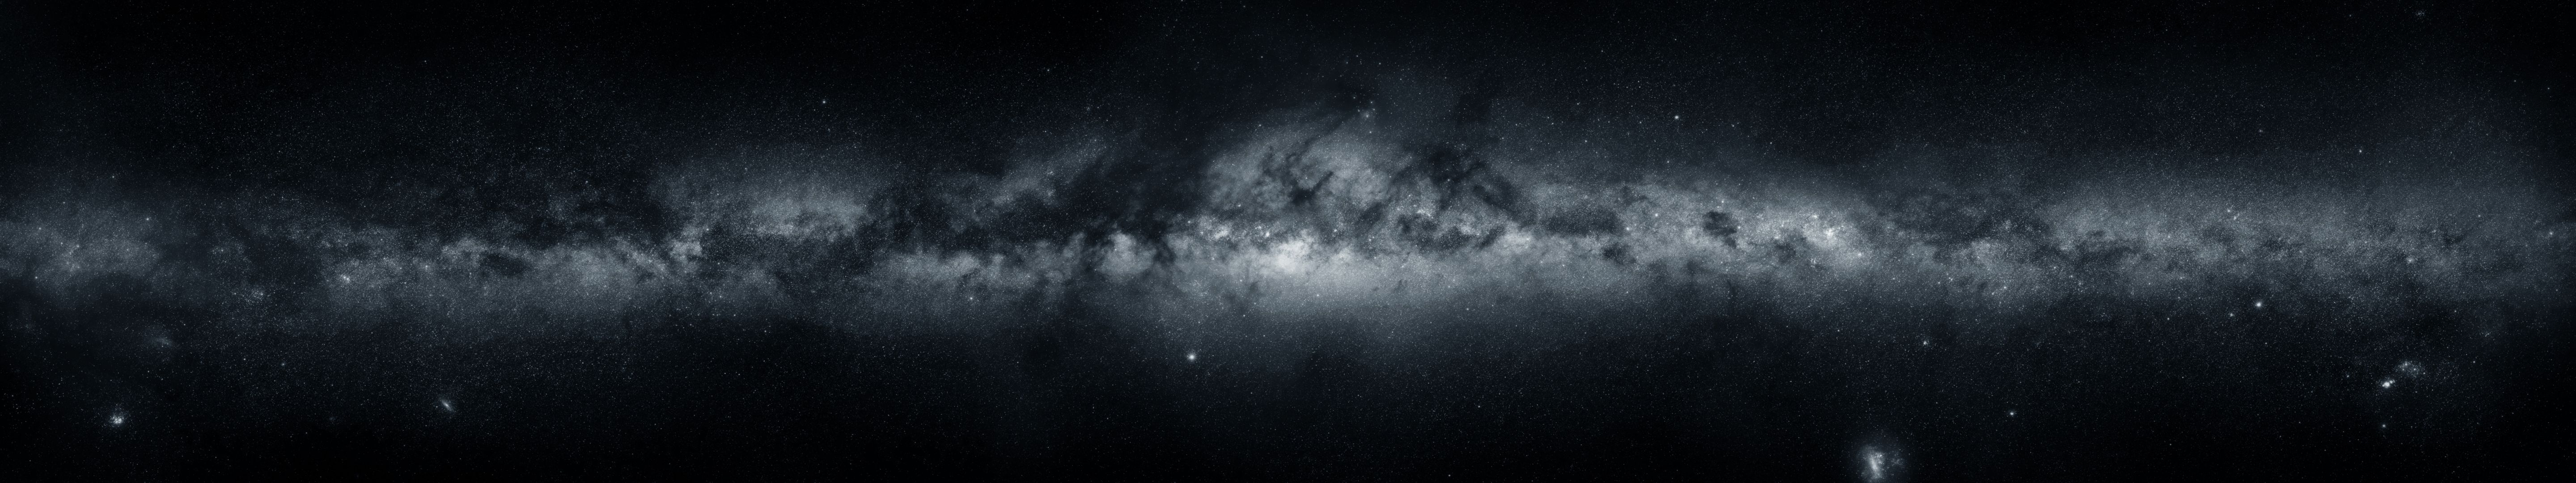 5760 X 2160 Space Wallpapers Top Free 5760 X 2160 Space